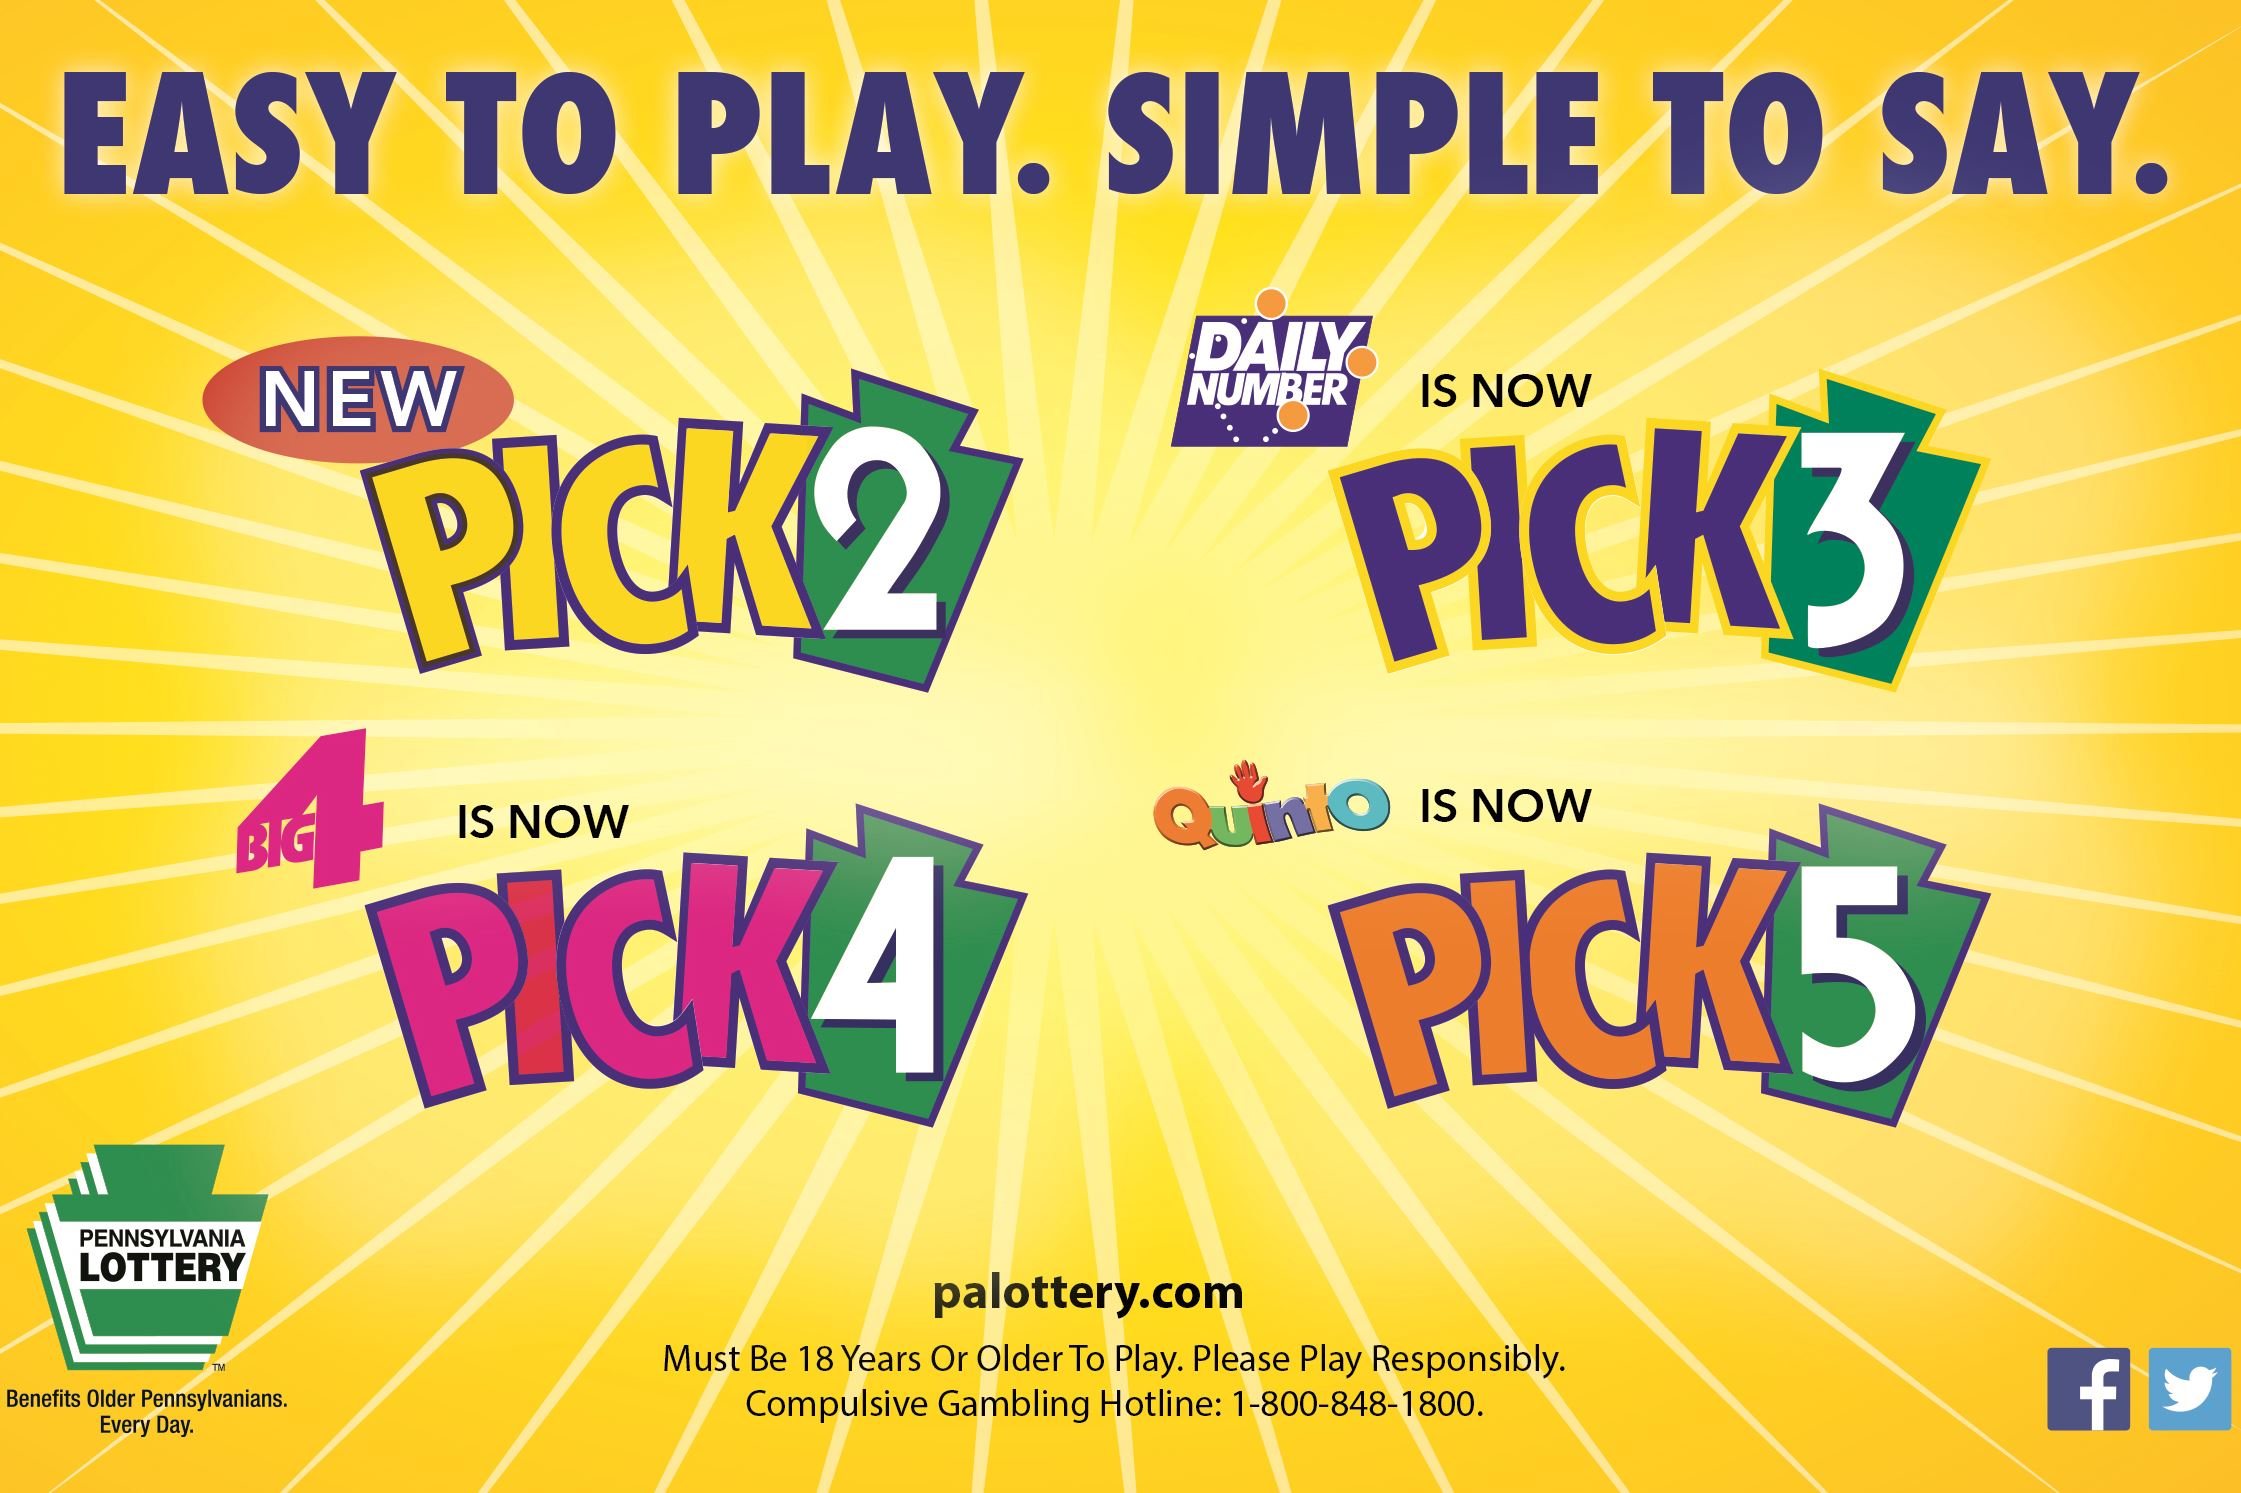 NEW JERSEY STATE LOTTERY